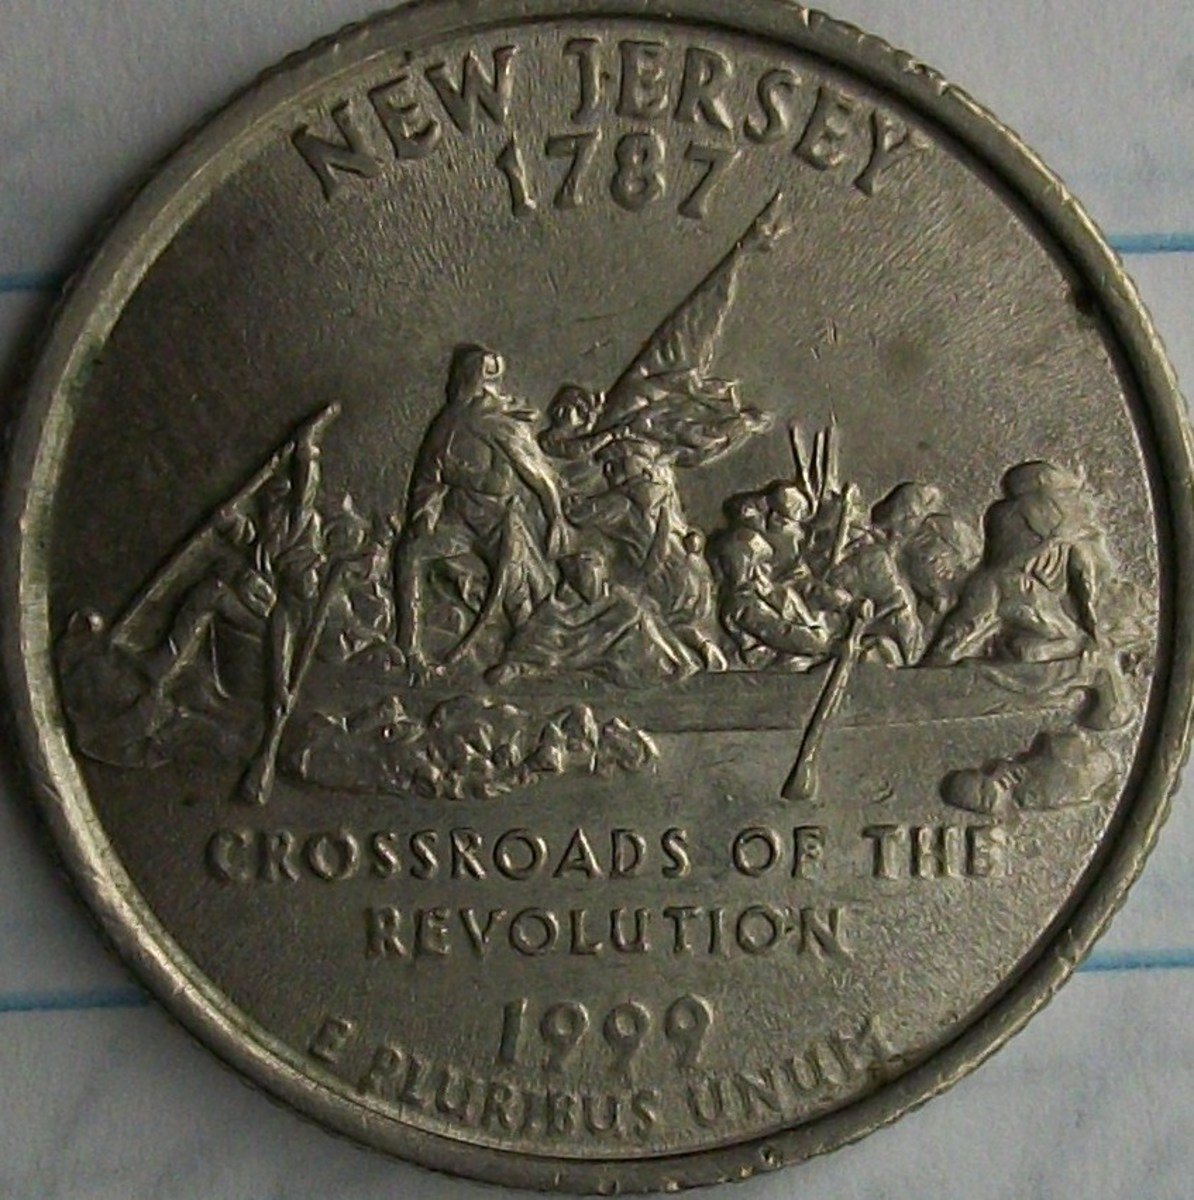 1999P New Jersey reverse doubled die.